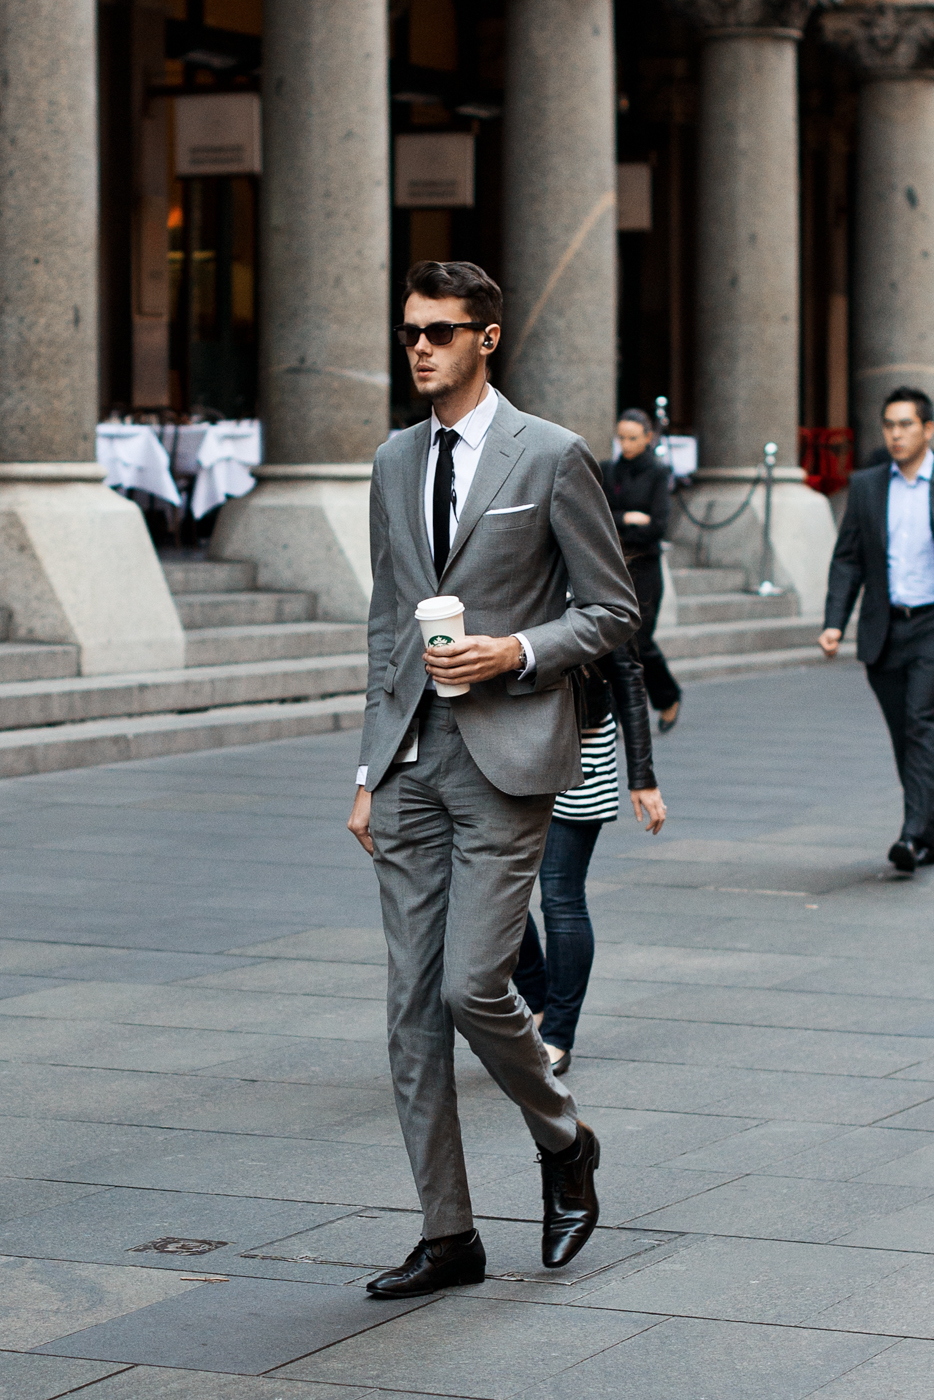 Lungo. Similar look: J. Crew Ludlow suit jacket with double vent in Italian oxford cloth.